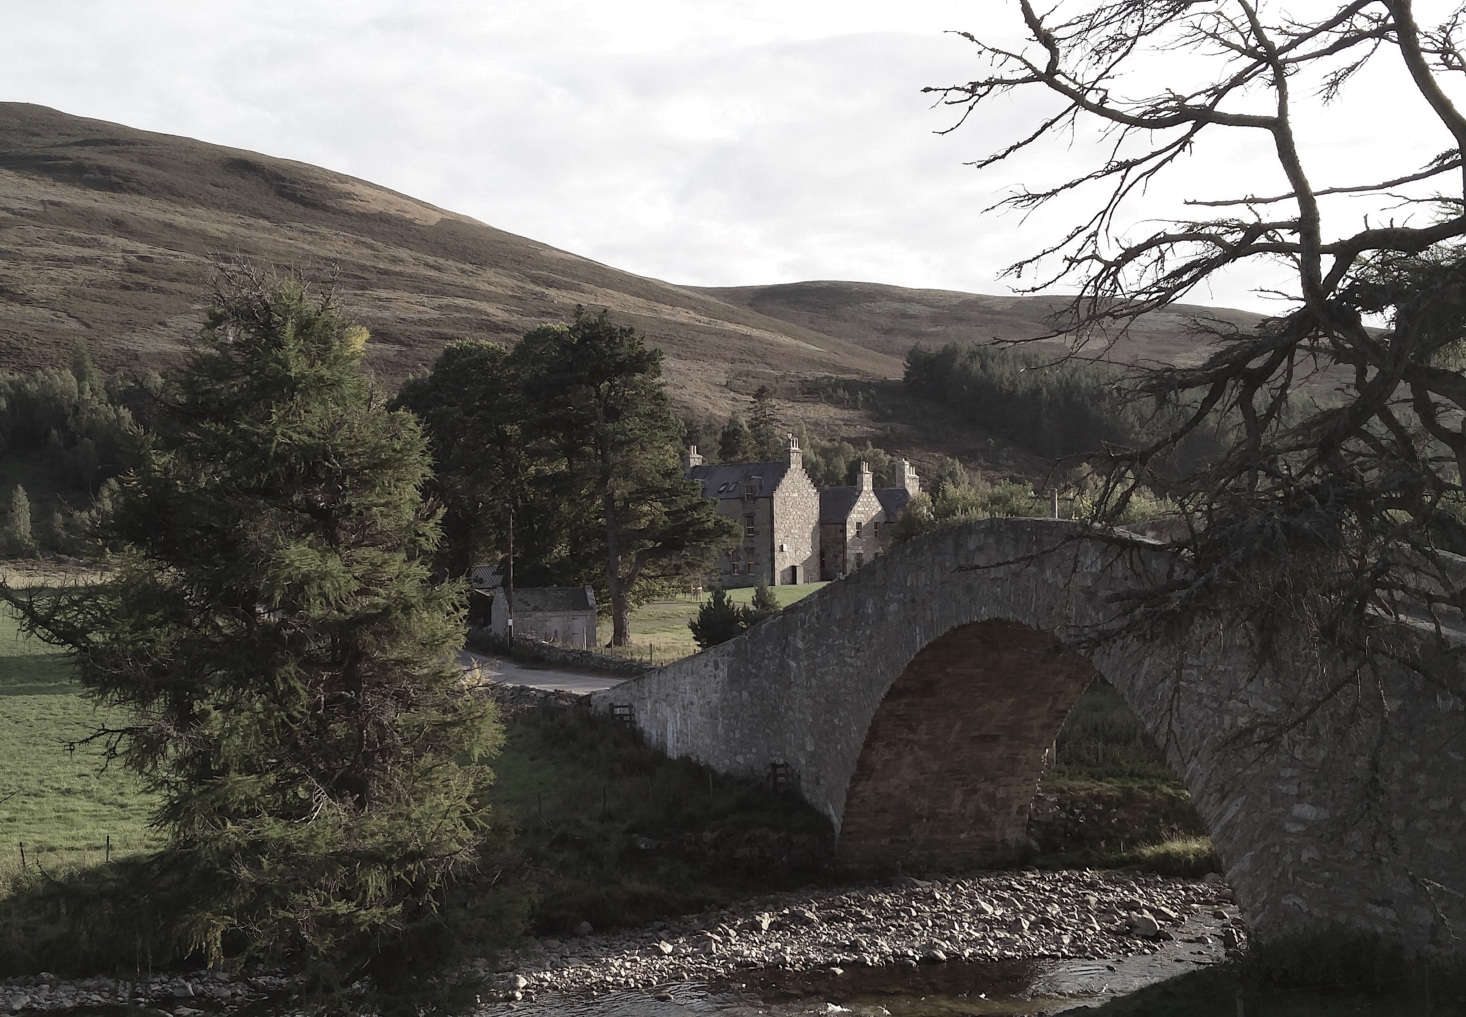 The Gairnshiel Bridge was built over the River Gairn in the 18th century. There are 20,000 private acres surrounding the lodge and beyond that is parkland.